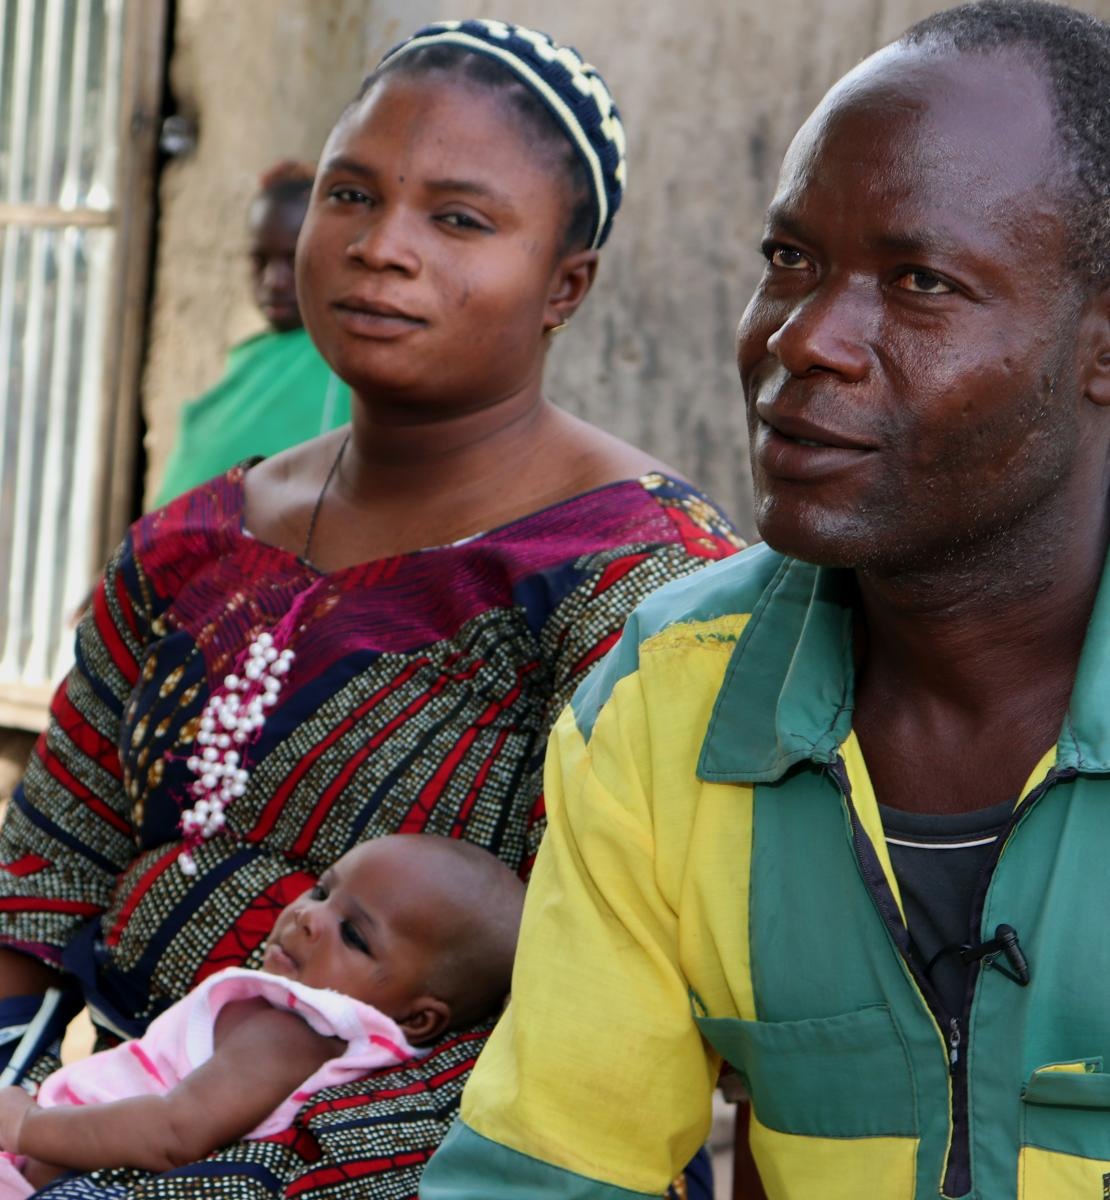 Safiatou and her husband Idrissou welcome their new baby and avoided the hassle of registering their fifth baby, thanks to the new toll-free phone option.